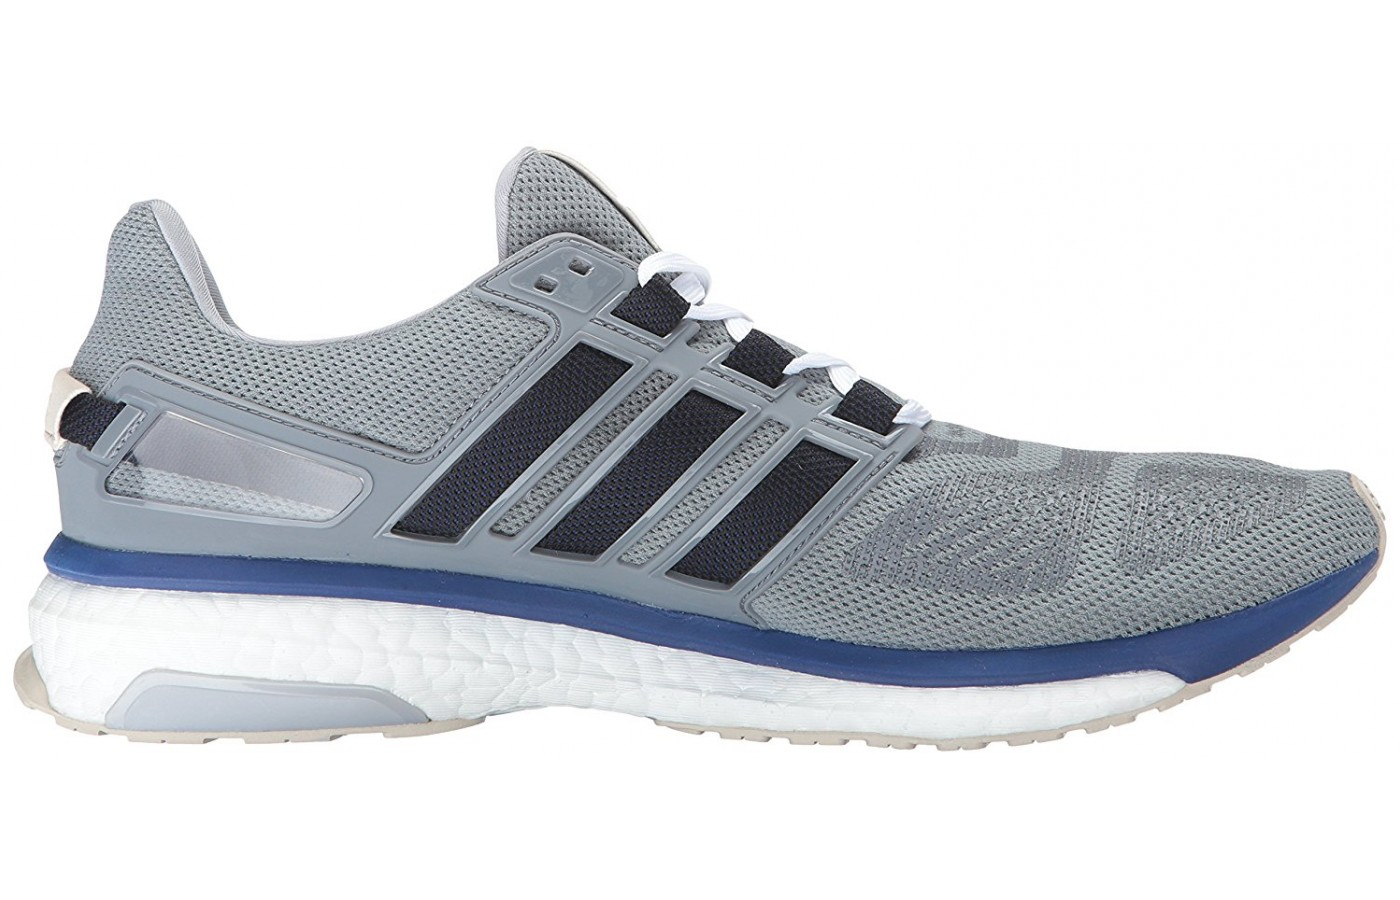 Adidas energy boost 3 side